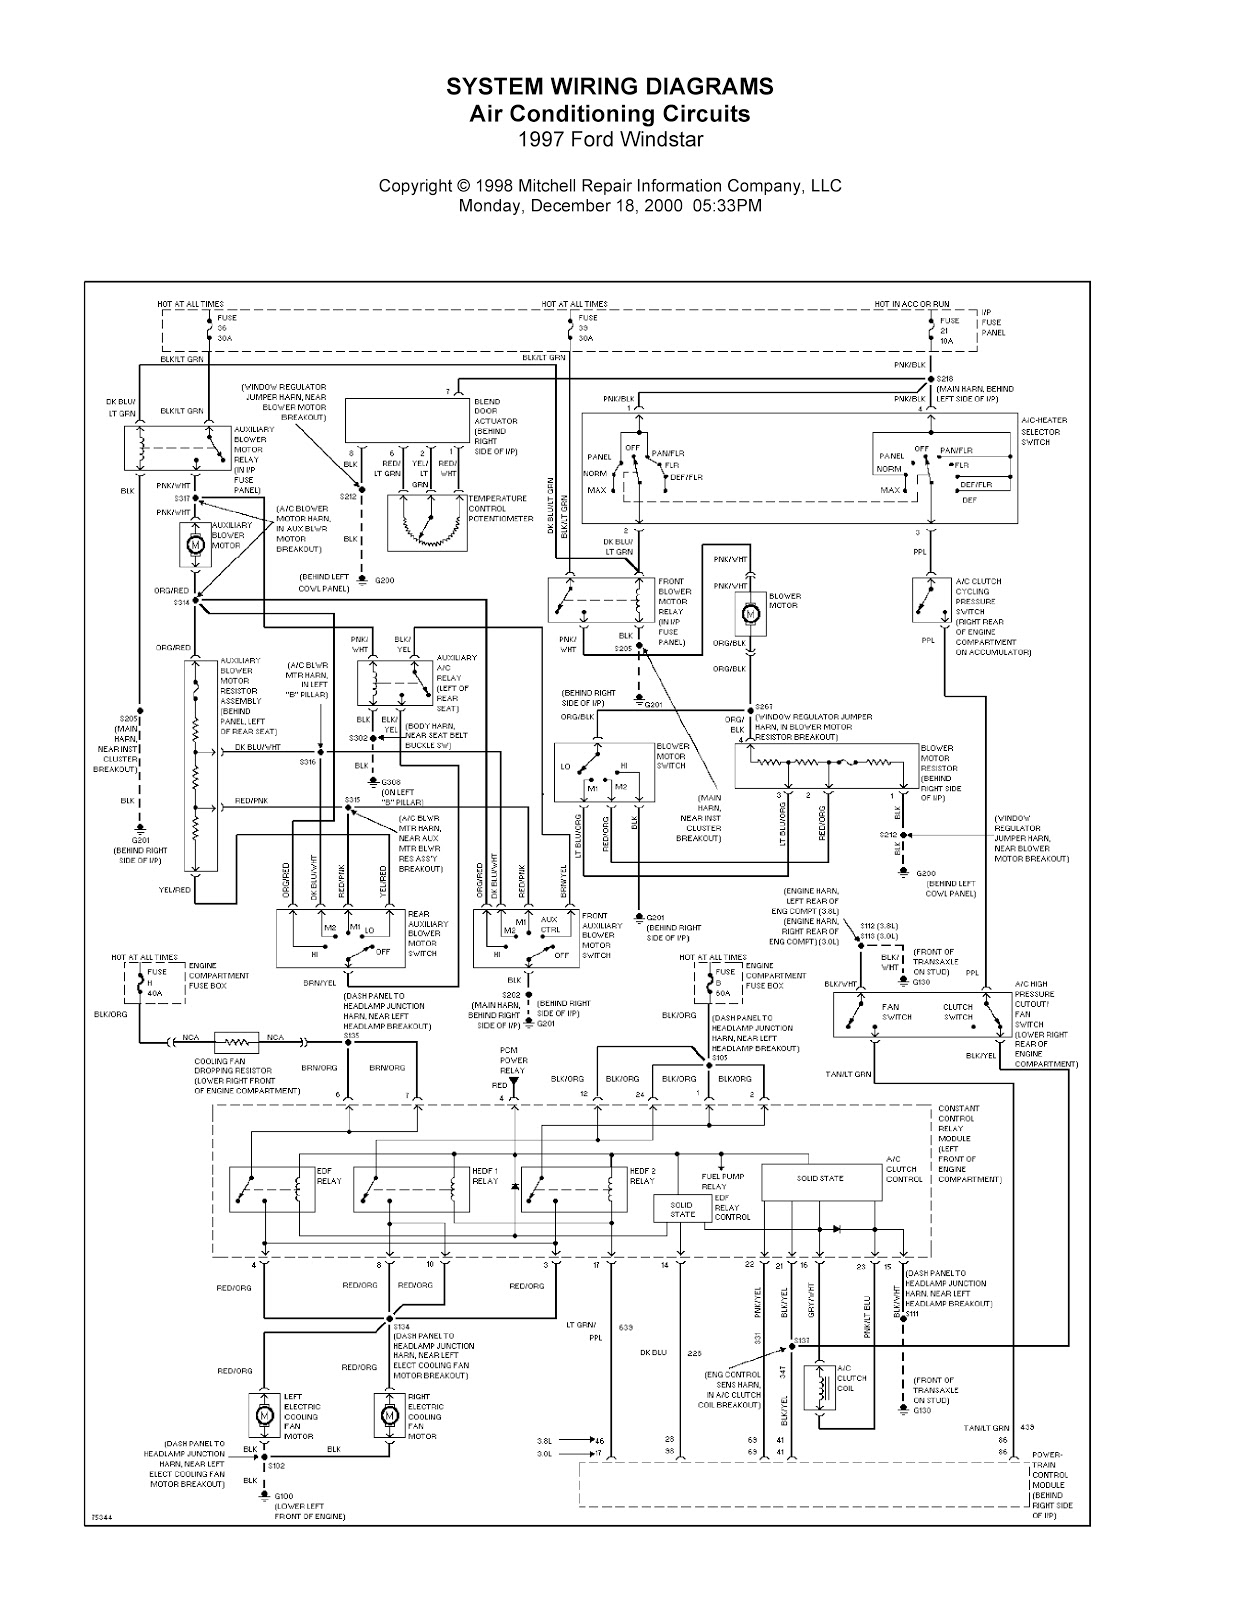 0001 1997 ford windstar complete system wiring diagrams wiring 1999 ford explorer rear wiper wiring diagram at metegol.co